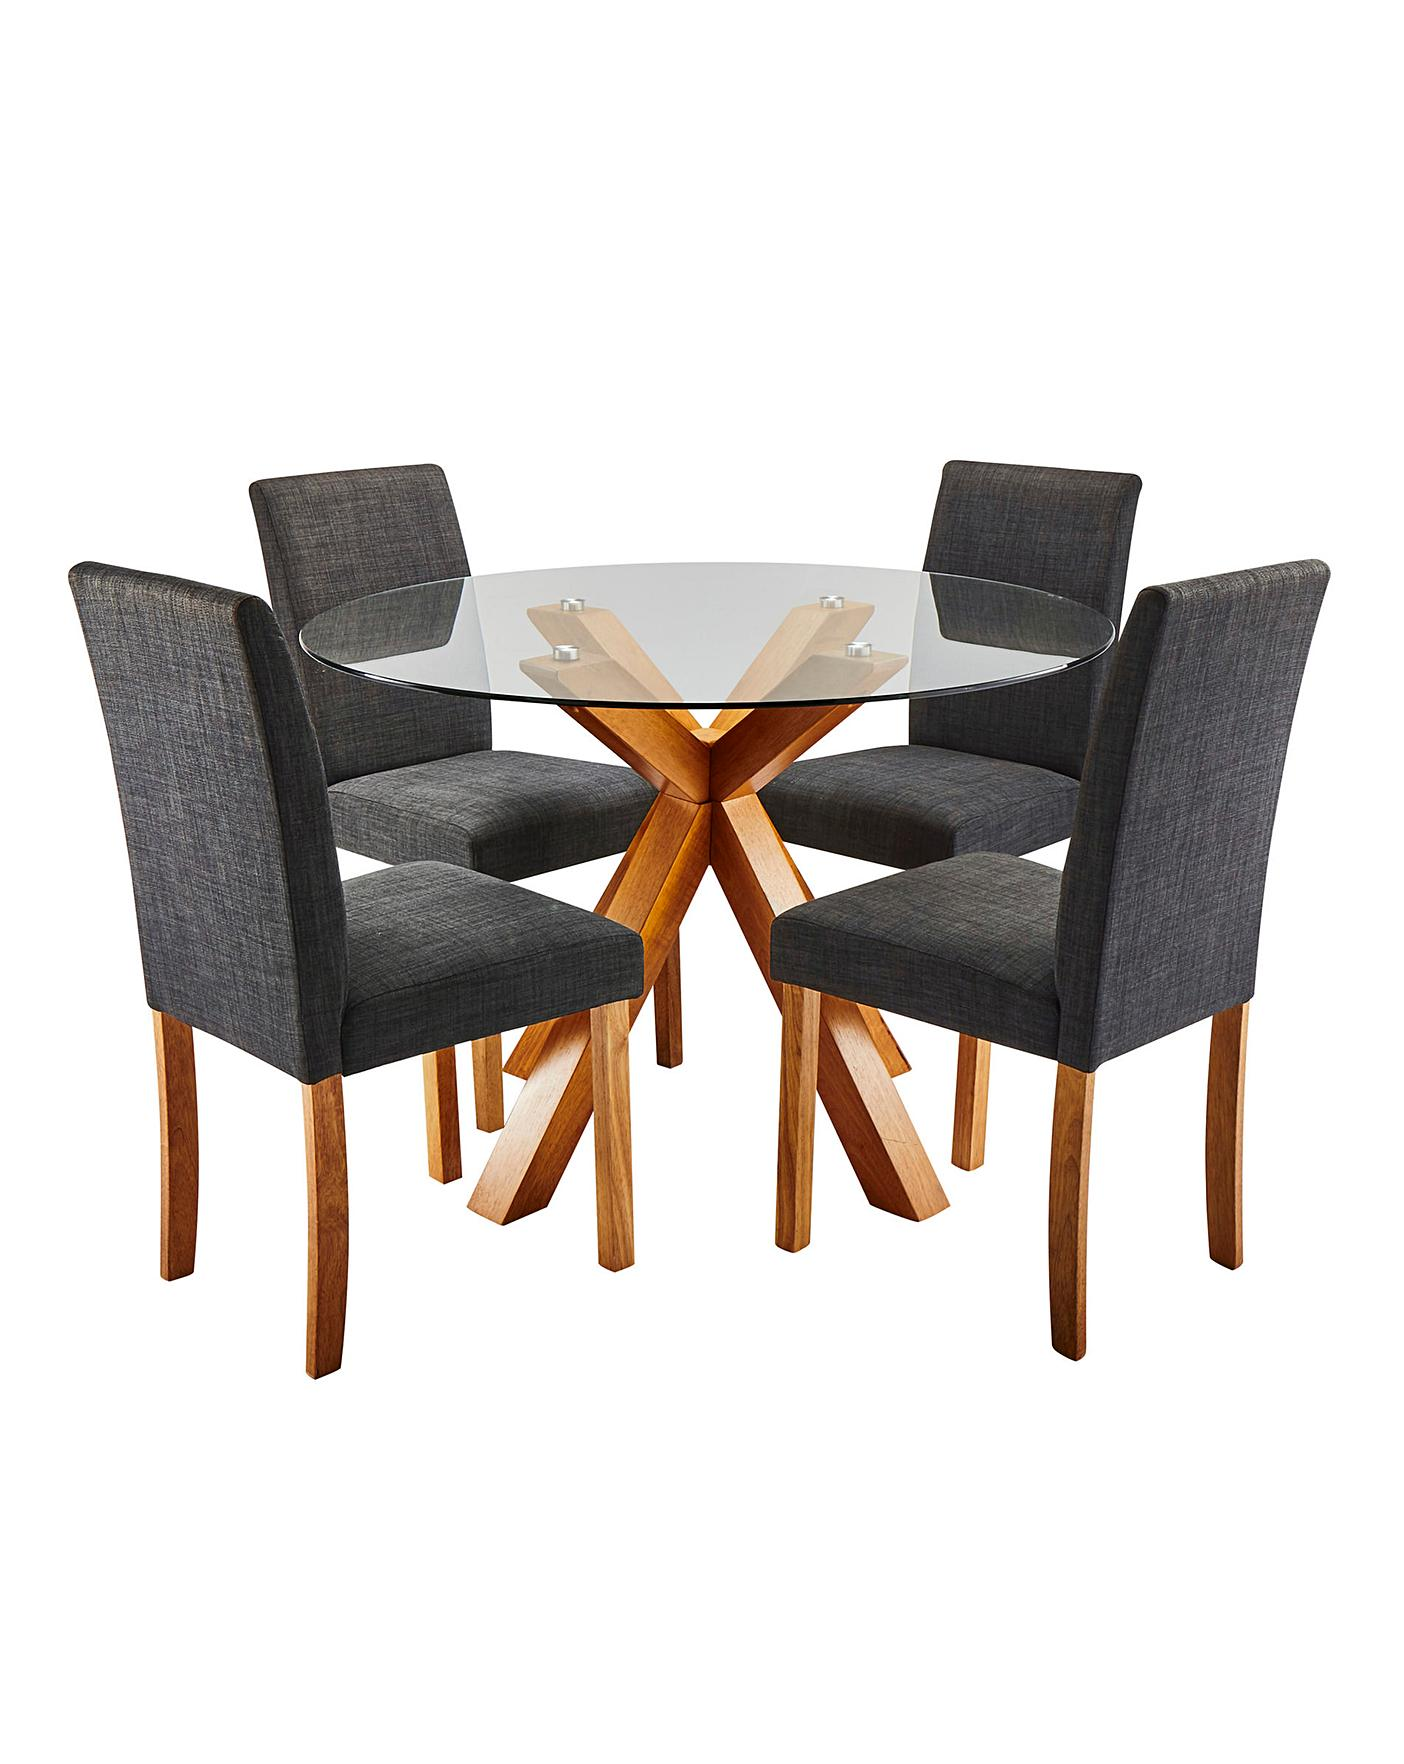 Awesome Albany Table With 4 Mia Fabric Chairs Andrewgaddart Wooden Chair Designs For Living Room Andrewgaddartcom